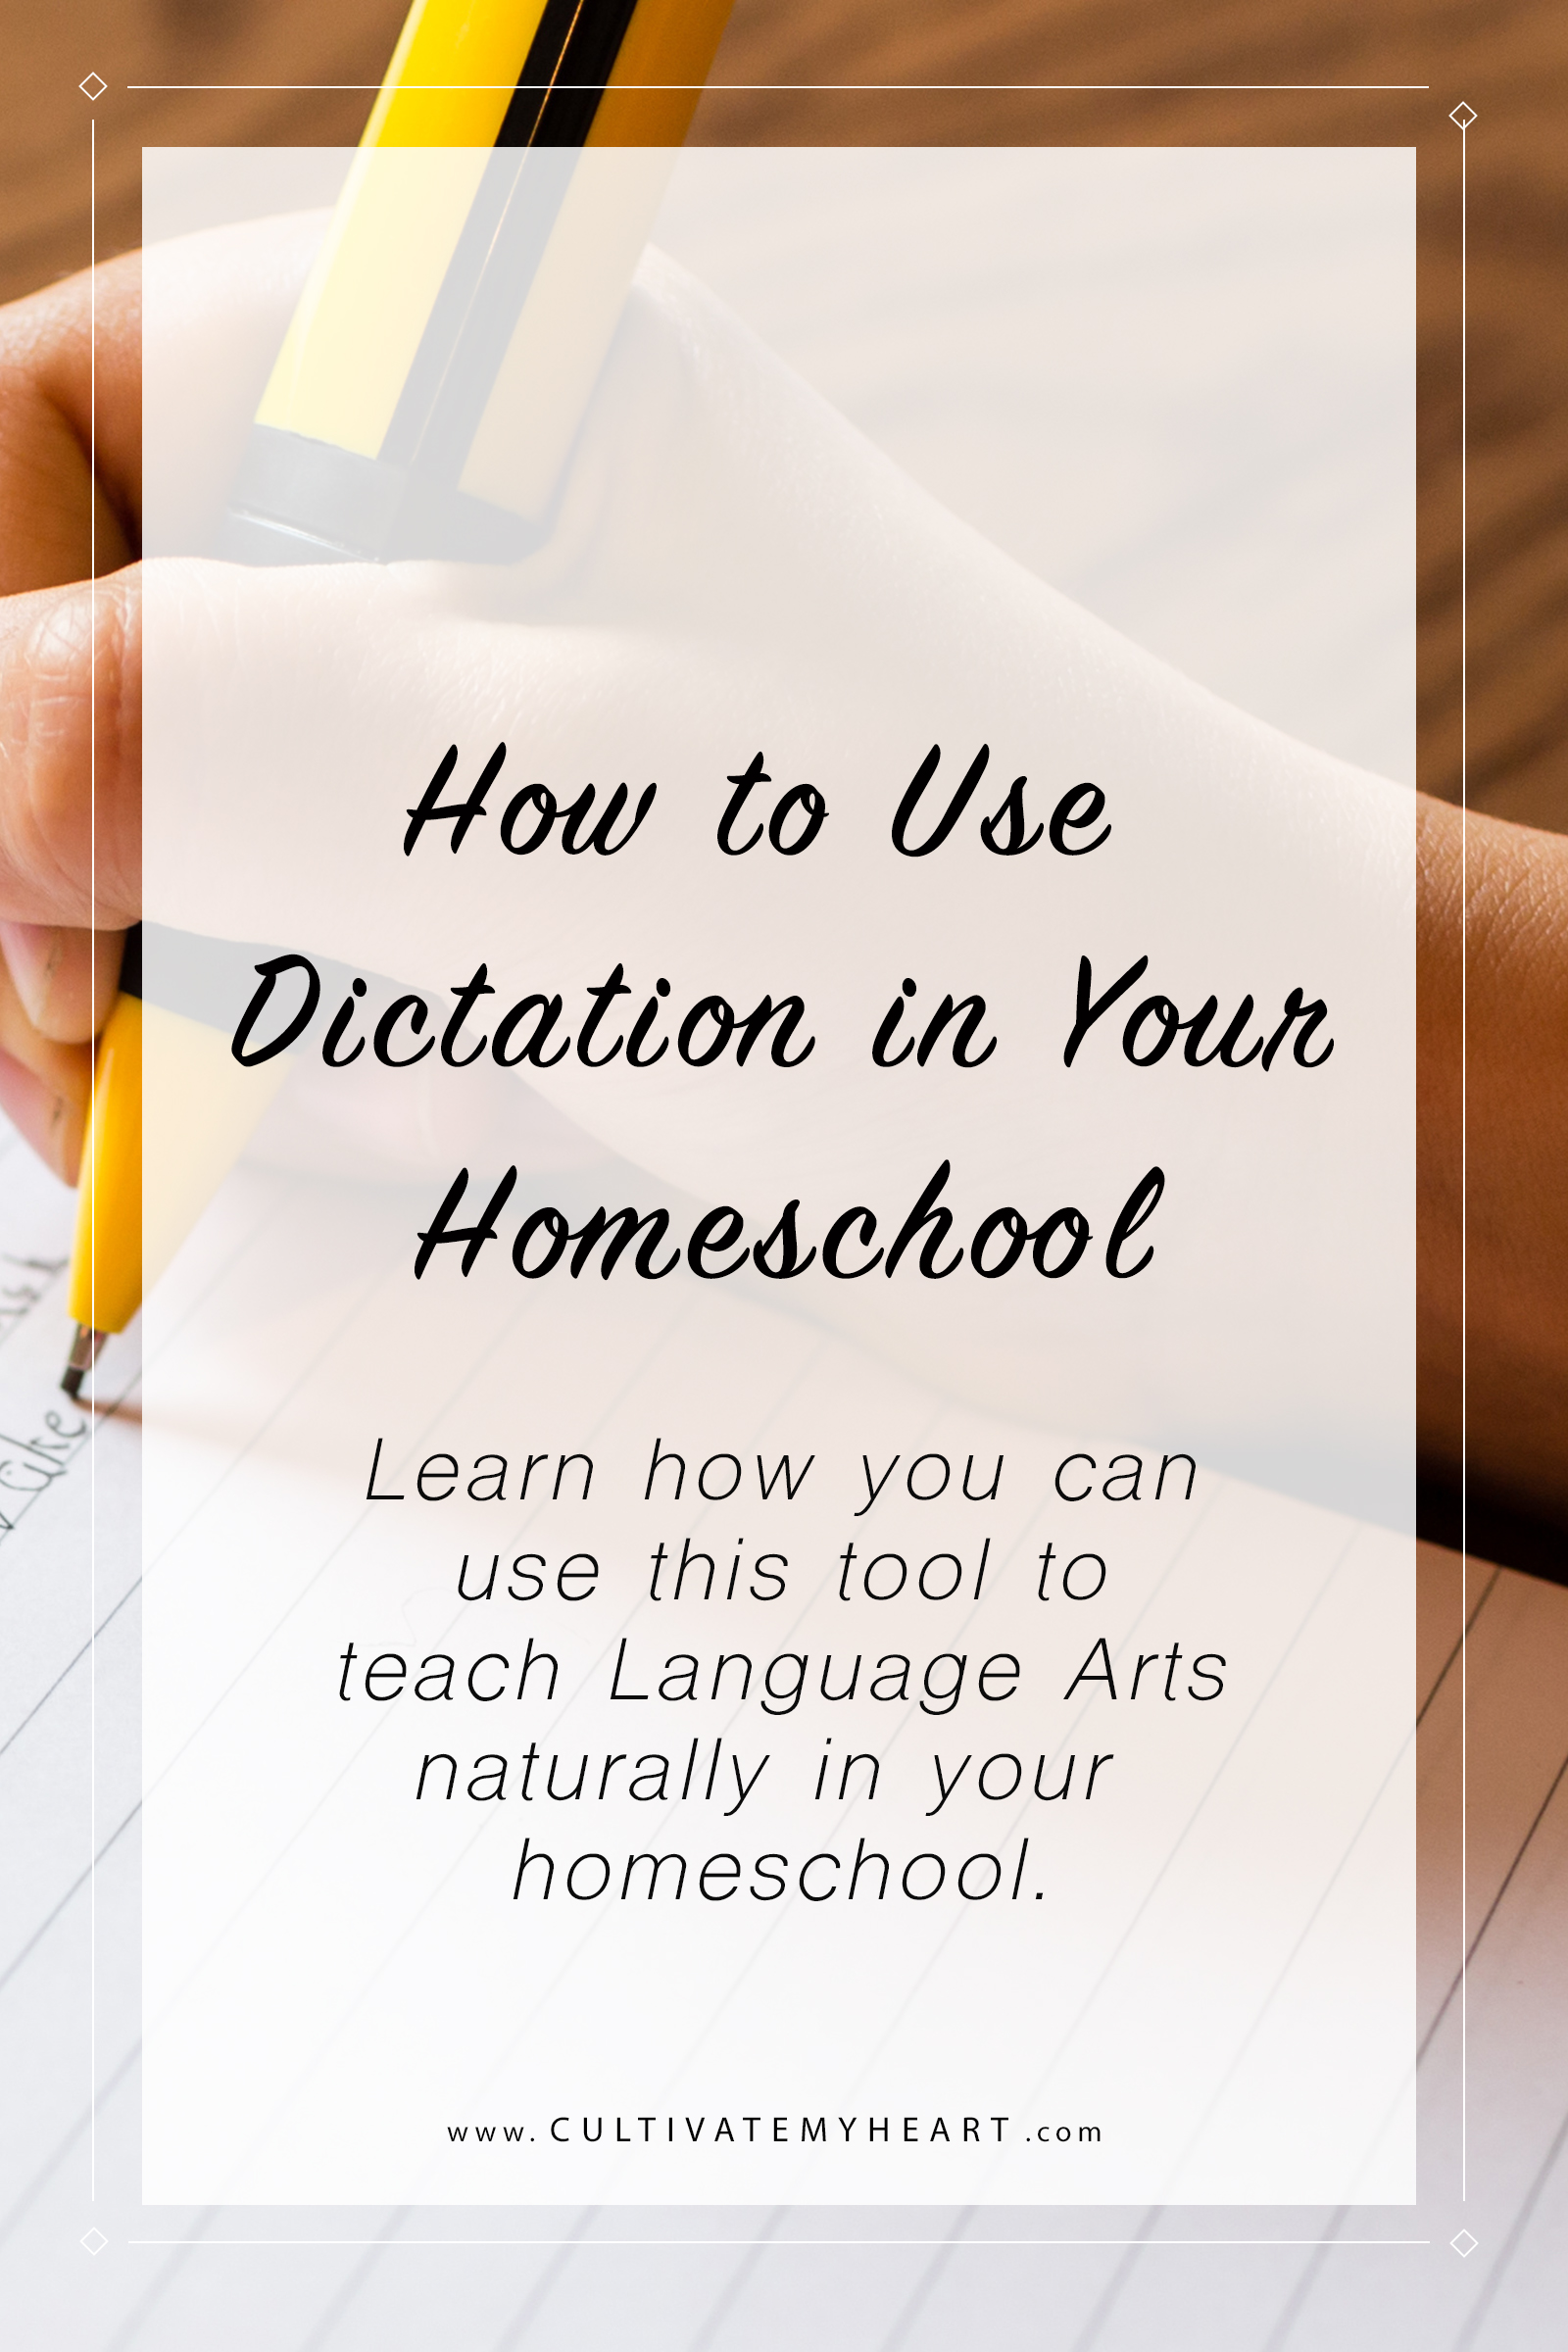 Do you want to simplify teaching Language Arts in your homeschool? When you teach it naturally, you use tools that are effective and powerful. In this part of the series